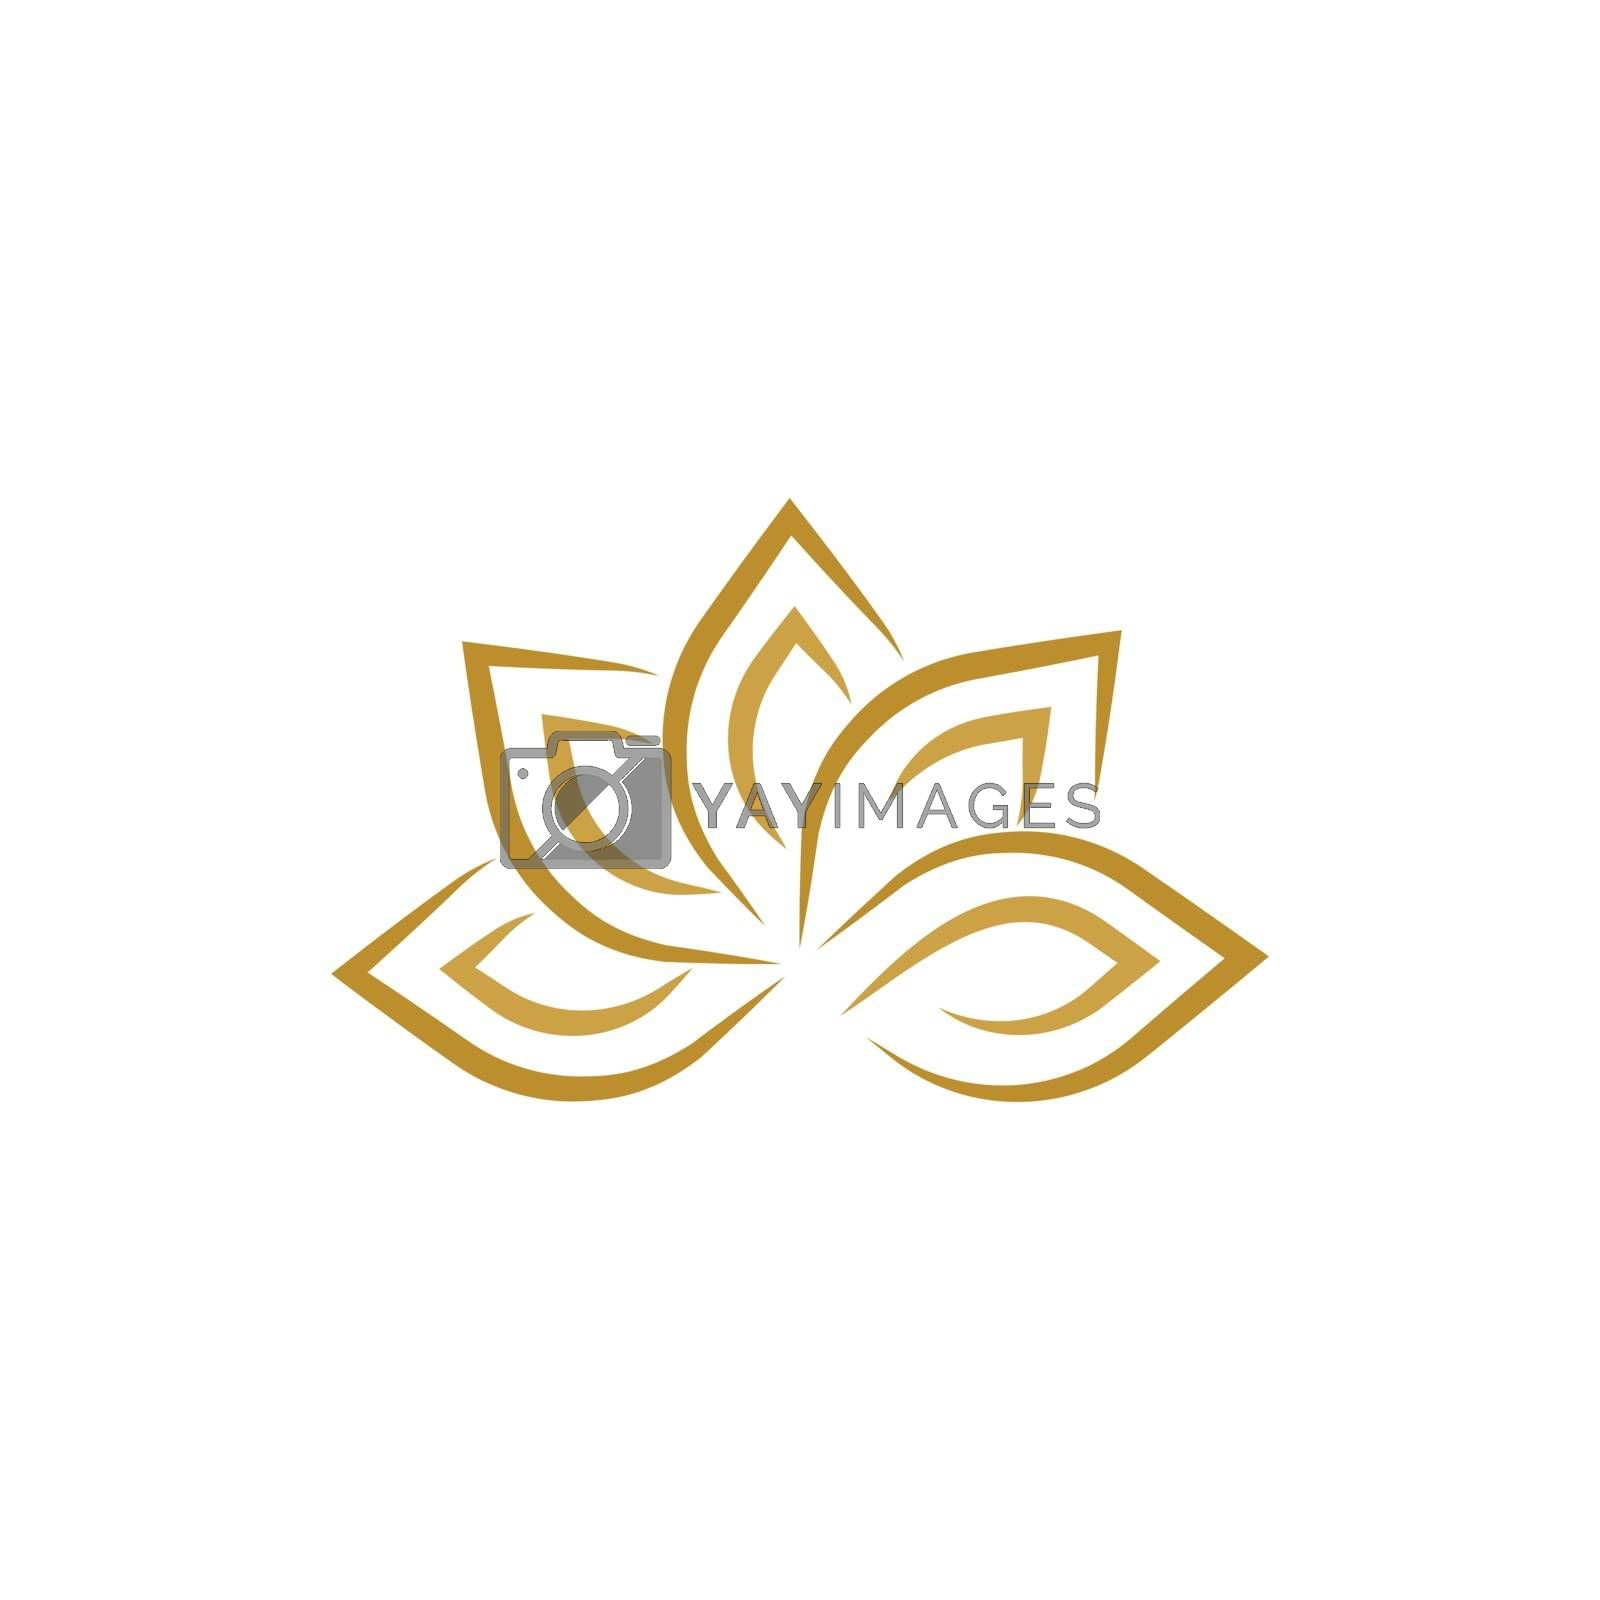 beauty lotus flower vector icon design template